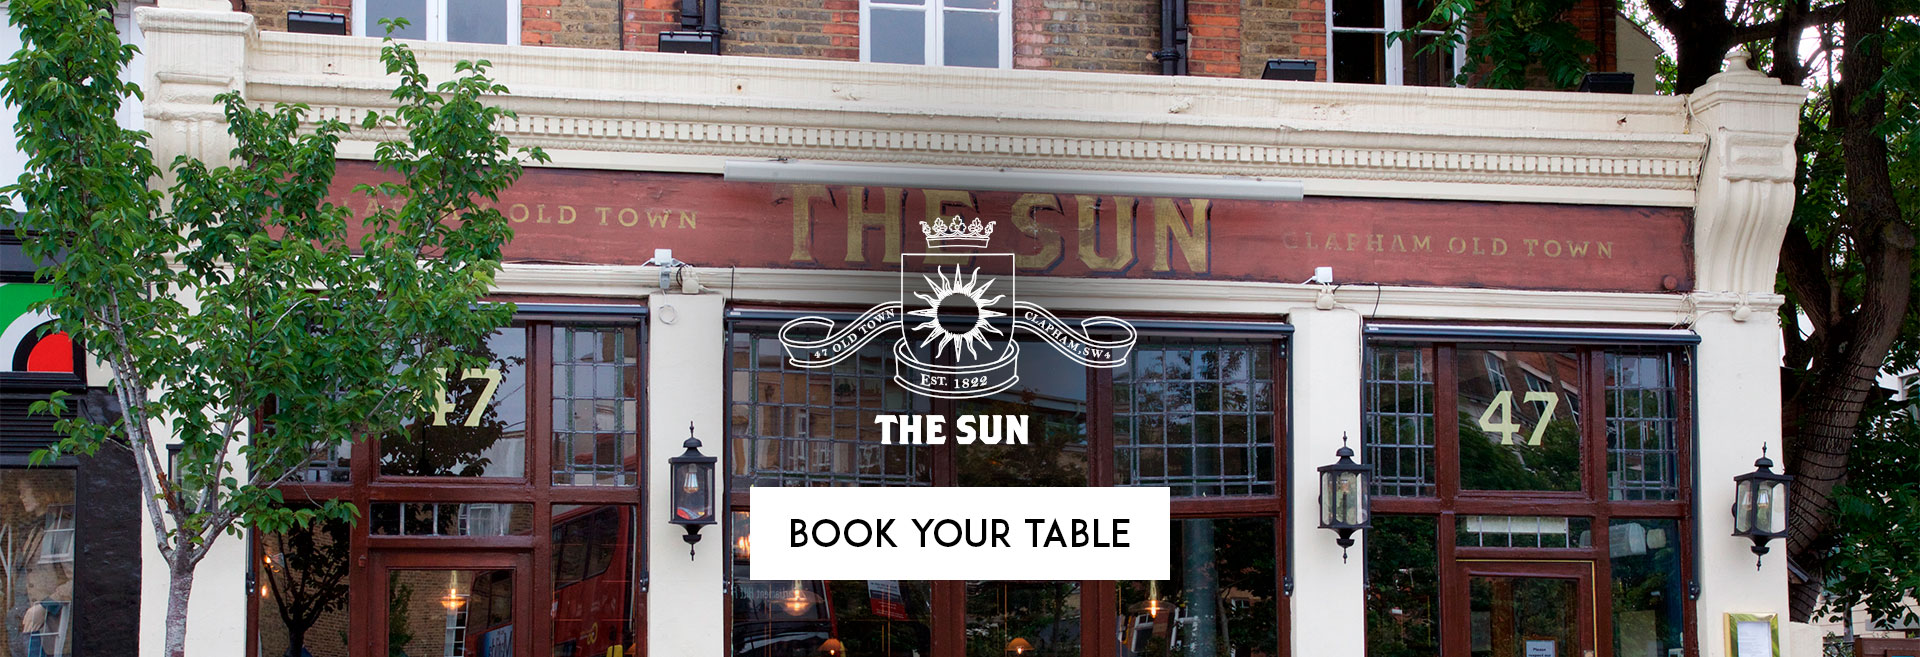 Book Your Table at The Sun